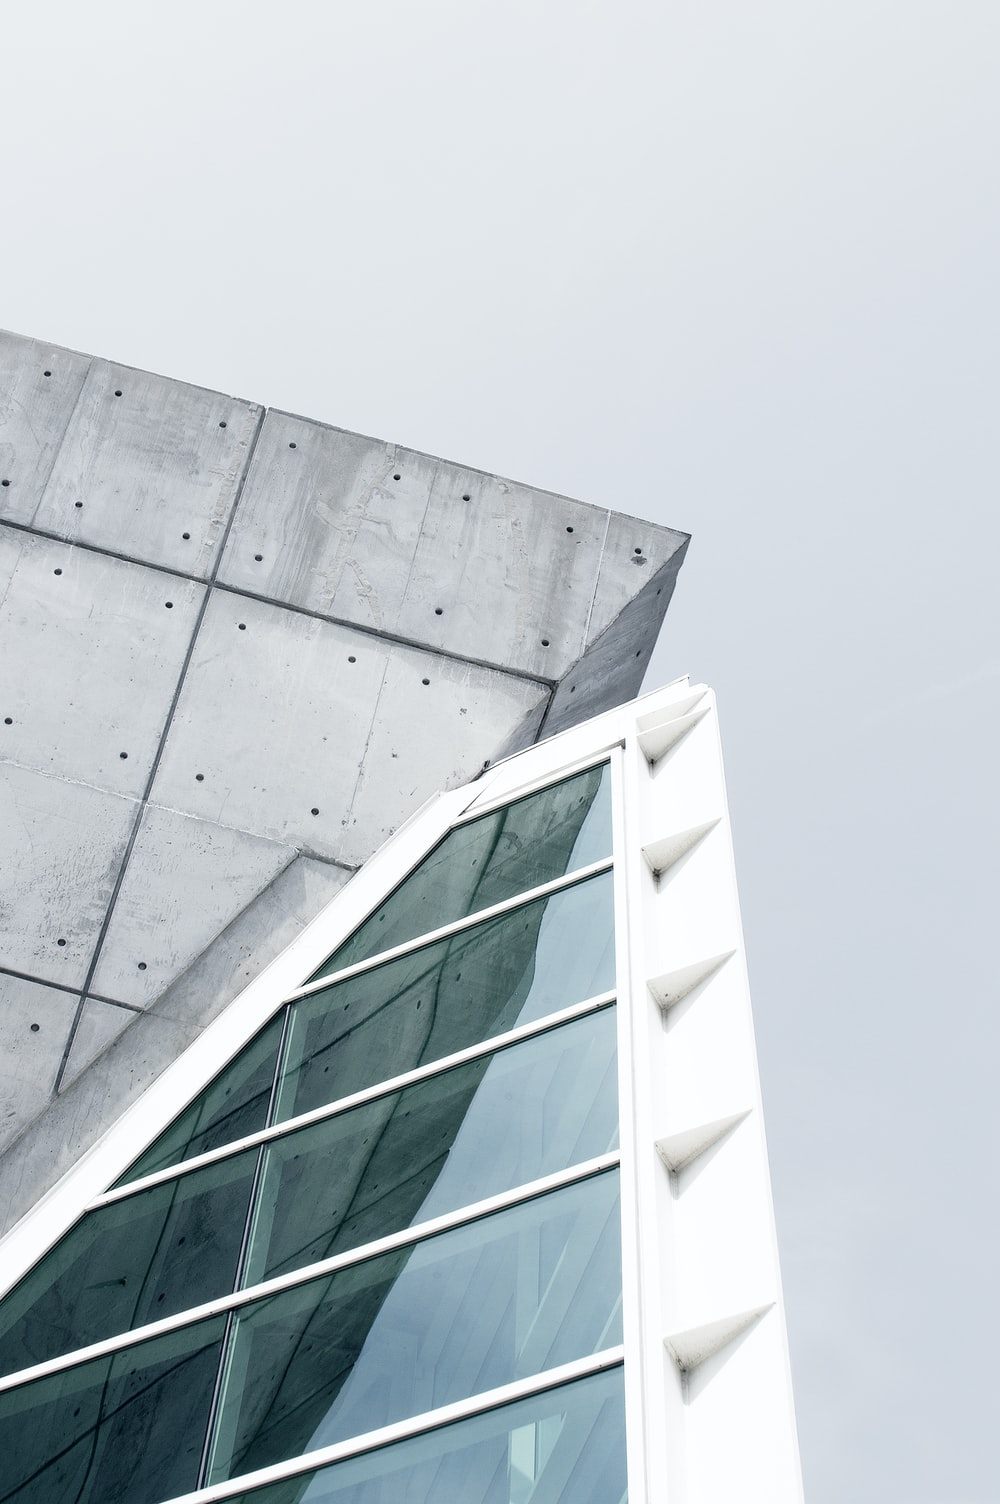 gray and white concrete building